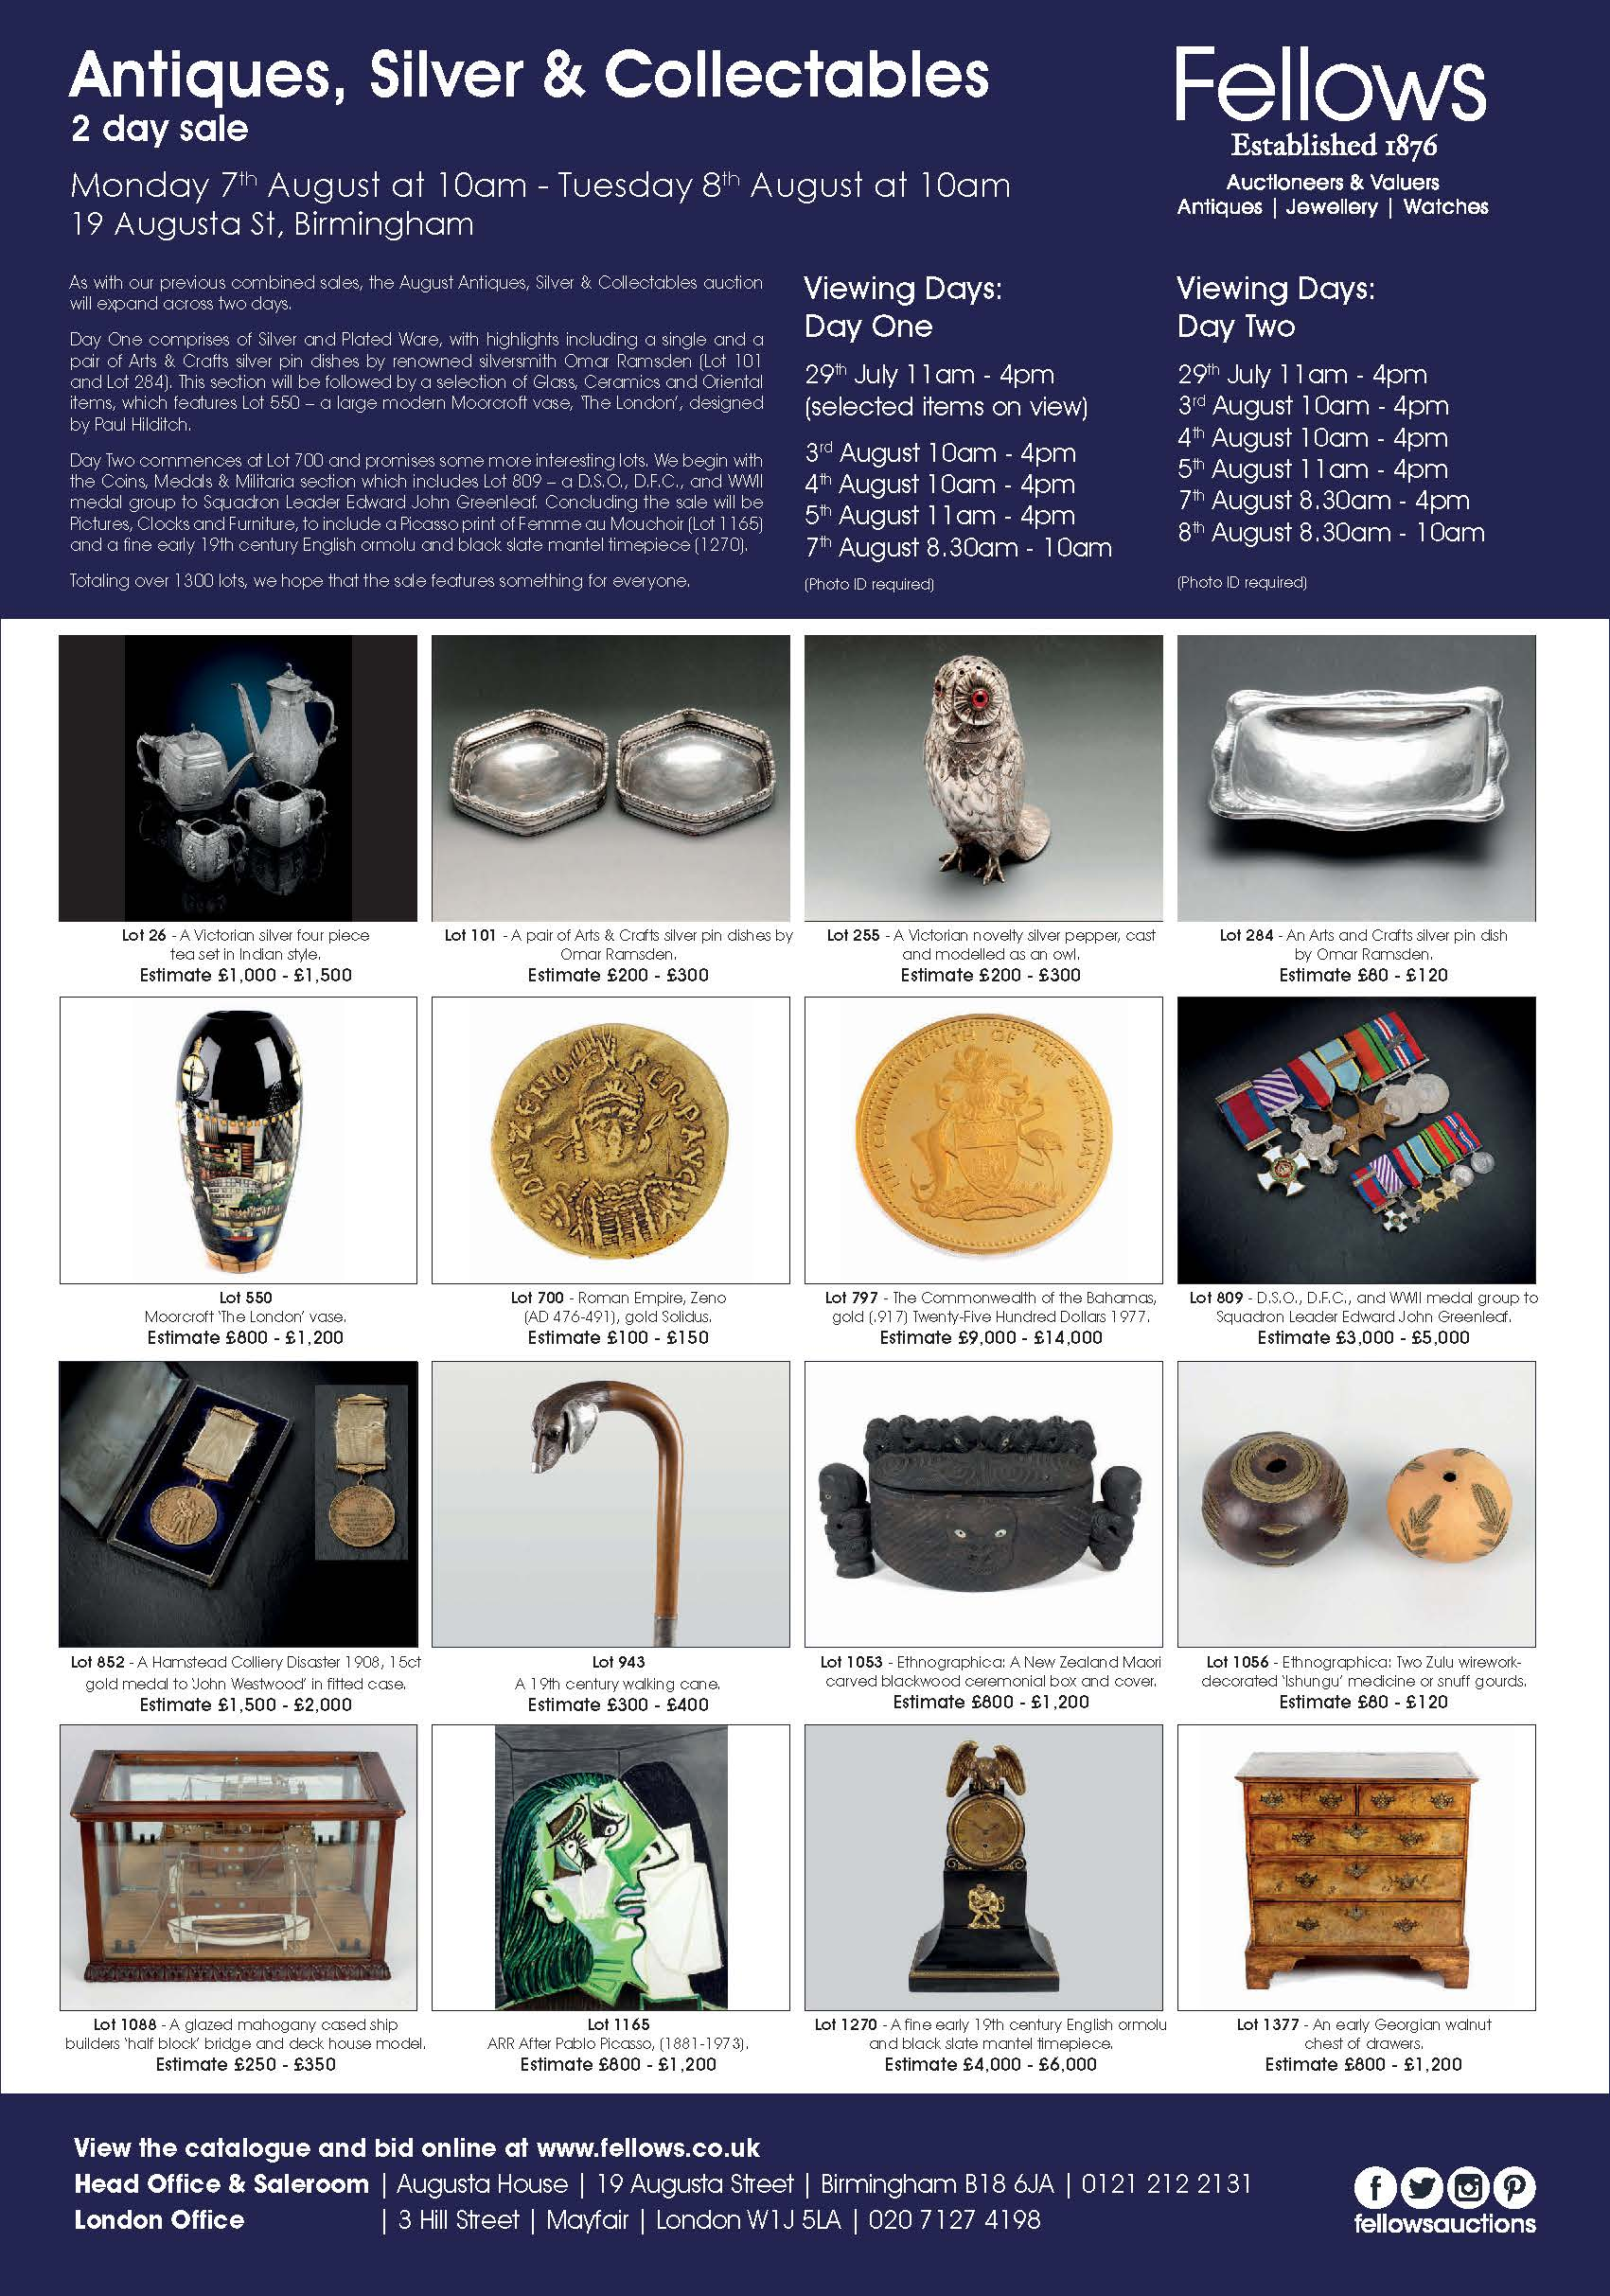 Fellows - Antiques Silver & Collectables.jpg